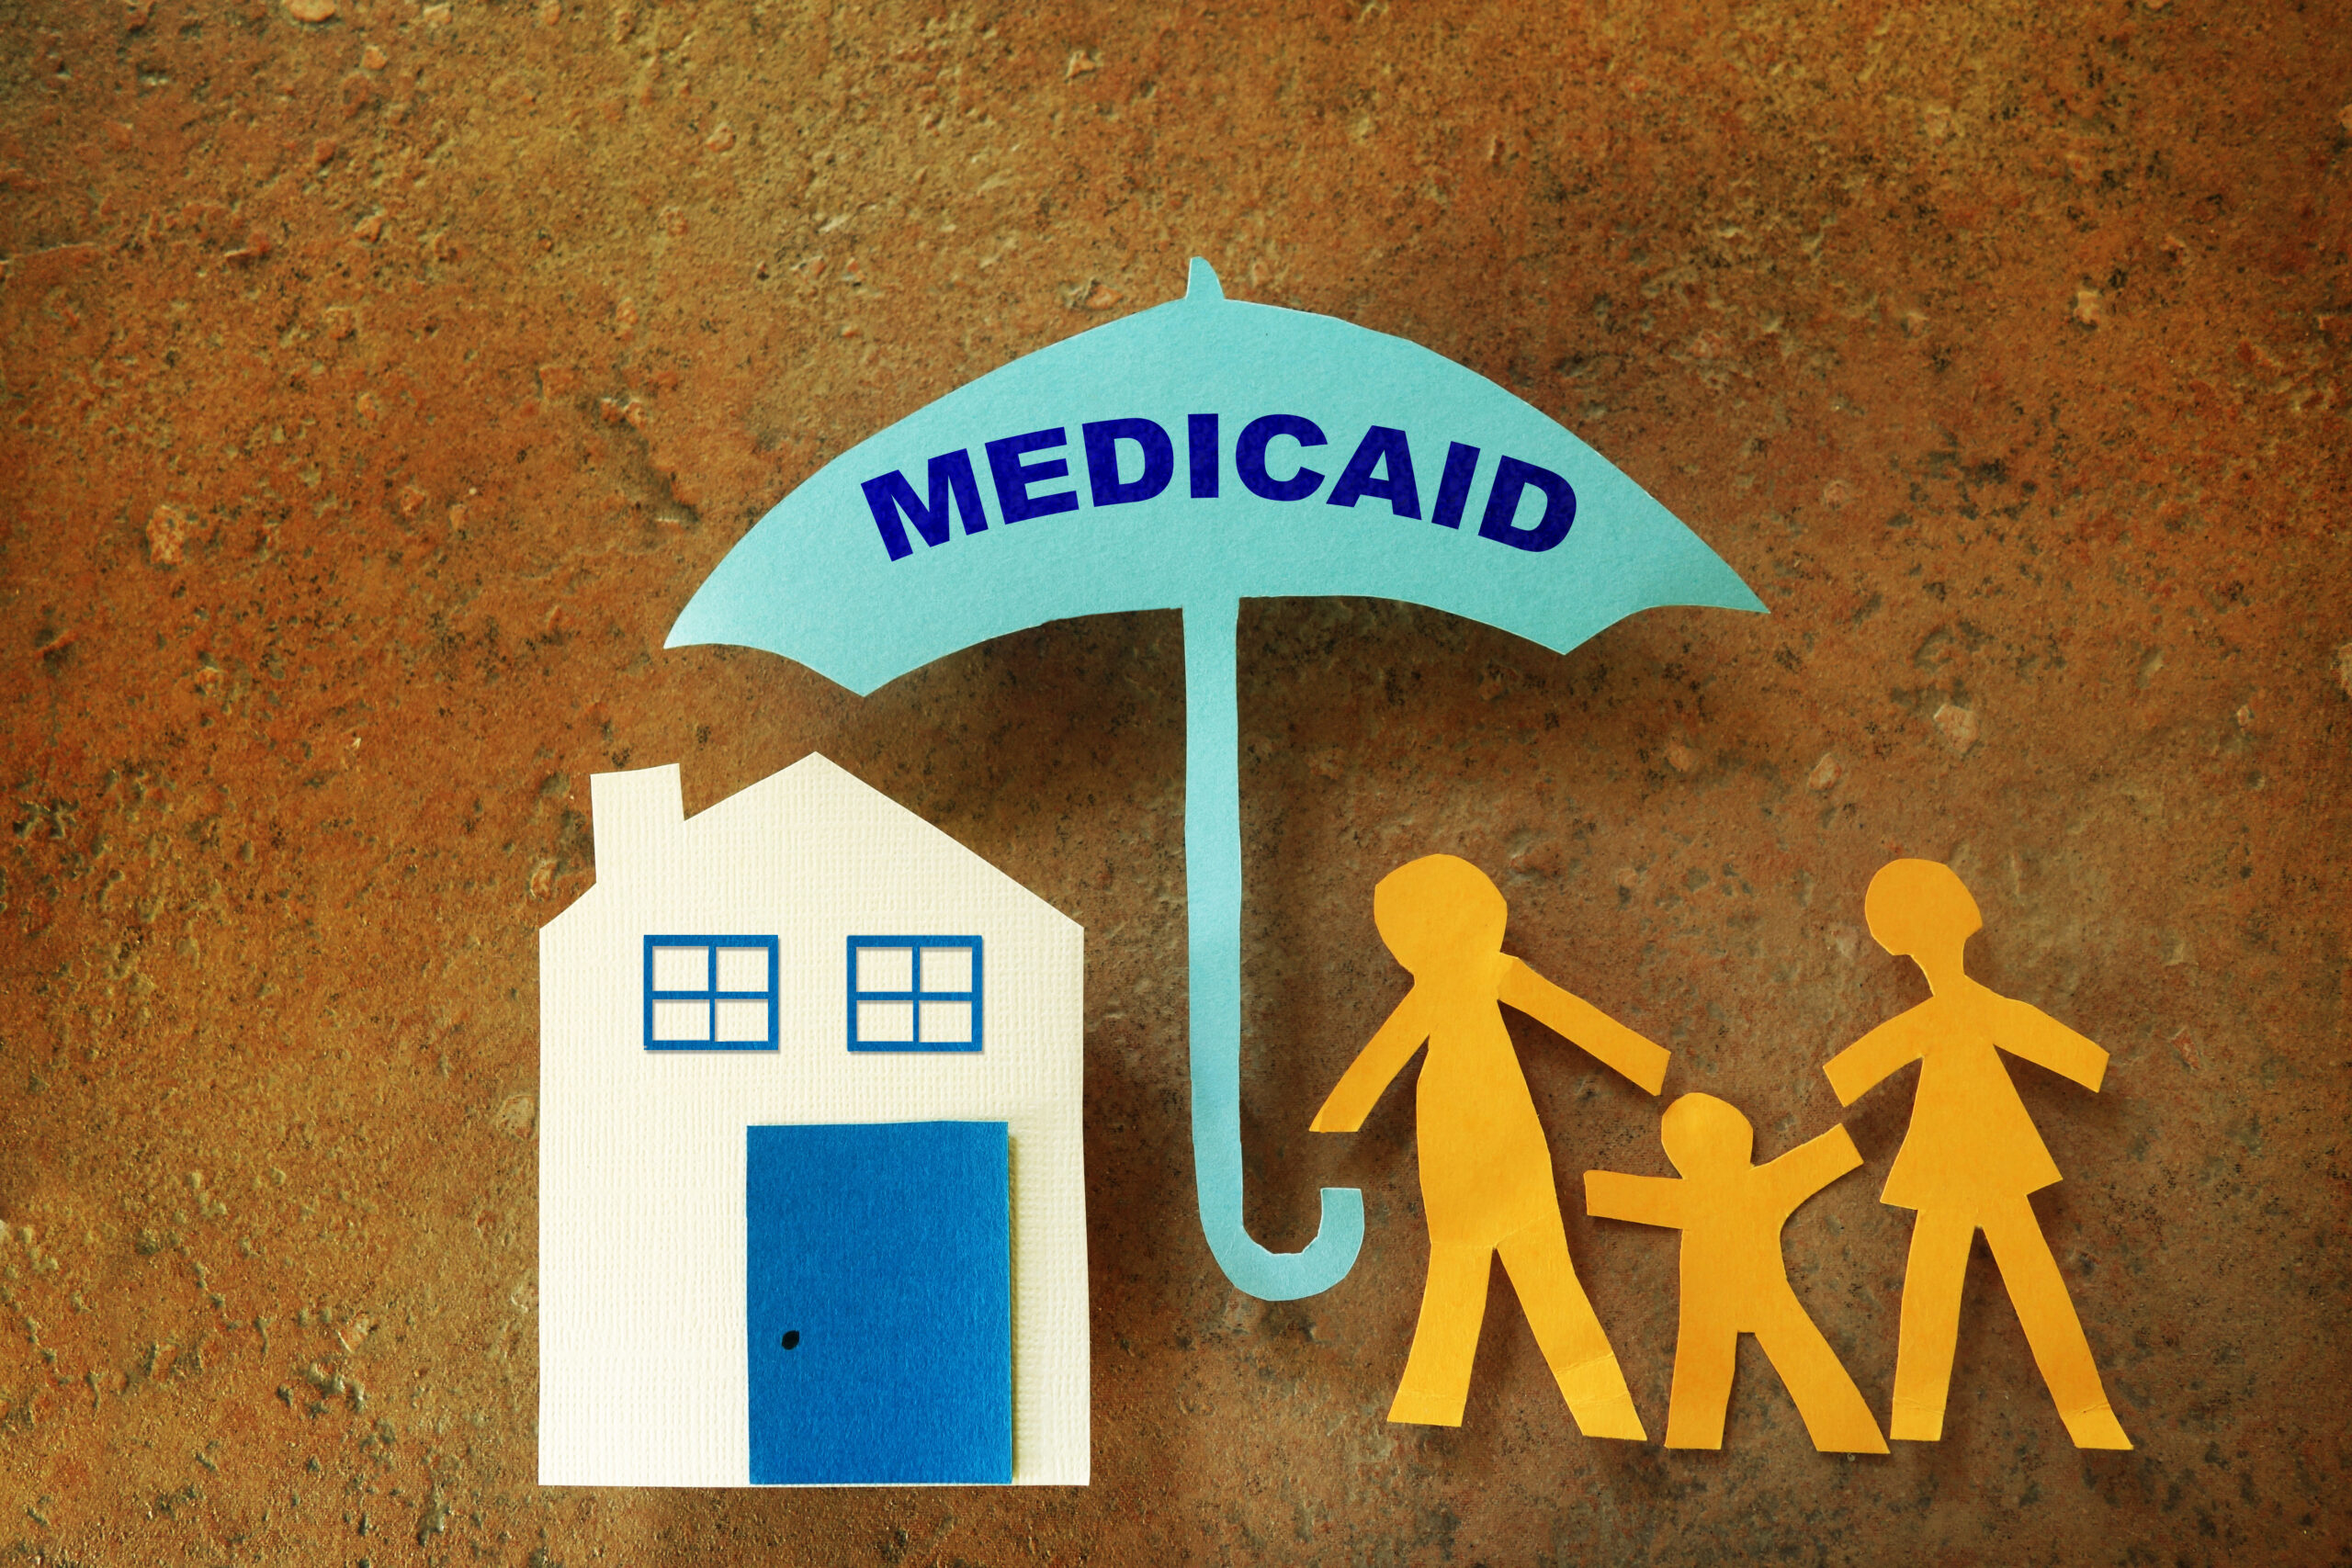 Planning Ahead for the Medicaid Look-Back Period